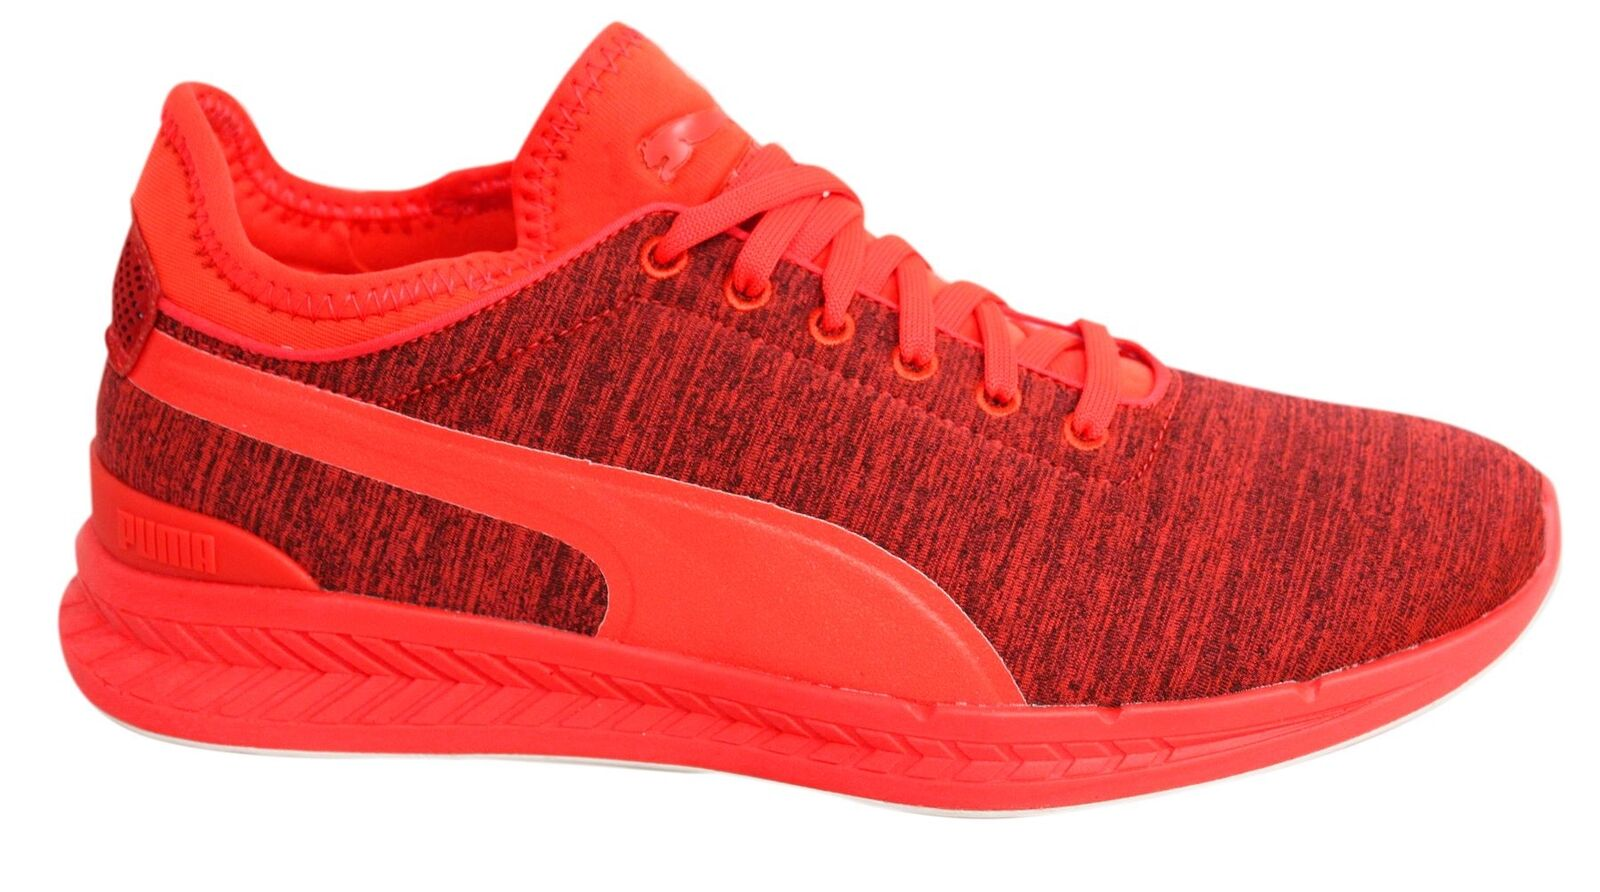 Puma Ignite Sock Jersey Lace Up Red Blast Mens Textile Trainers 362352 01 U98 Great discount